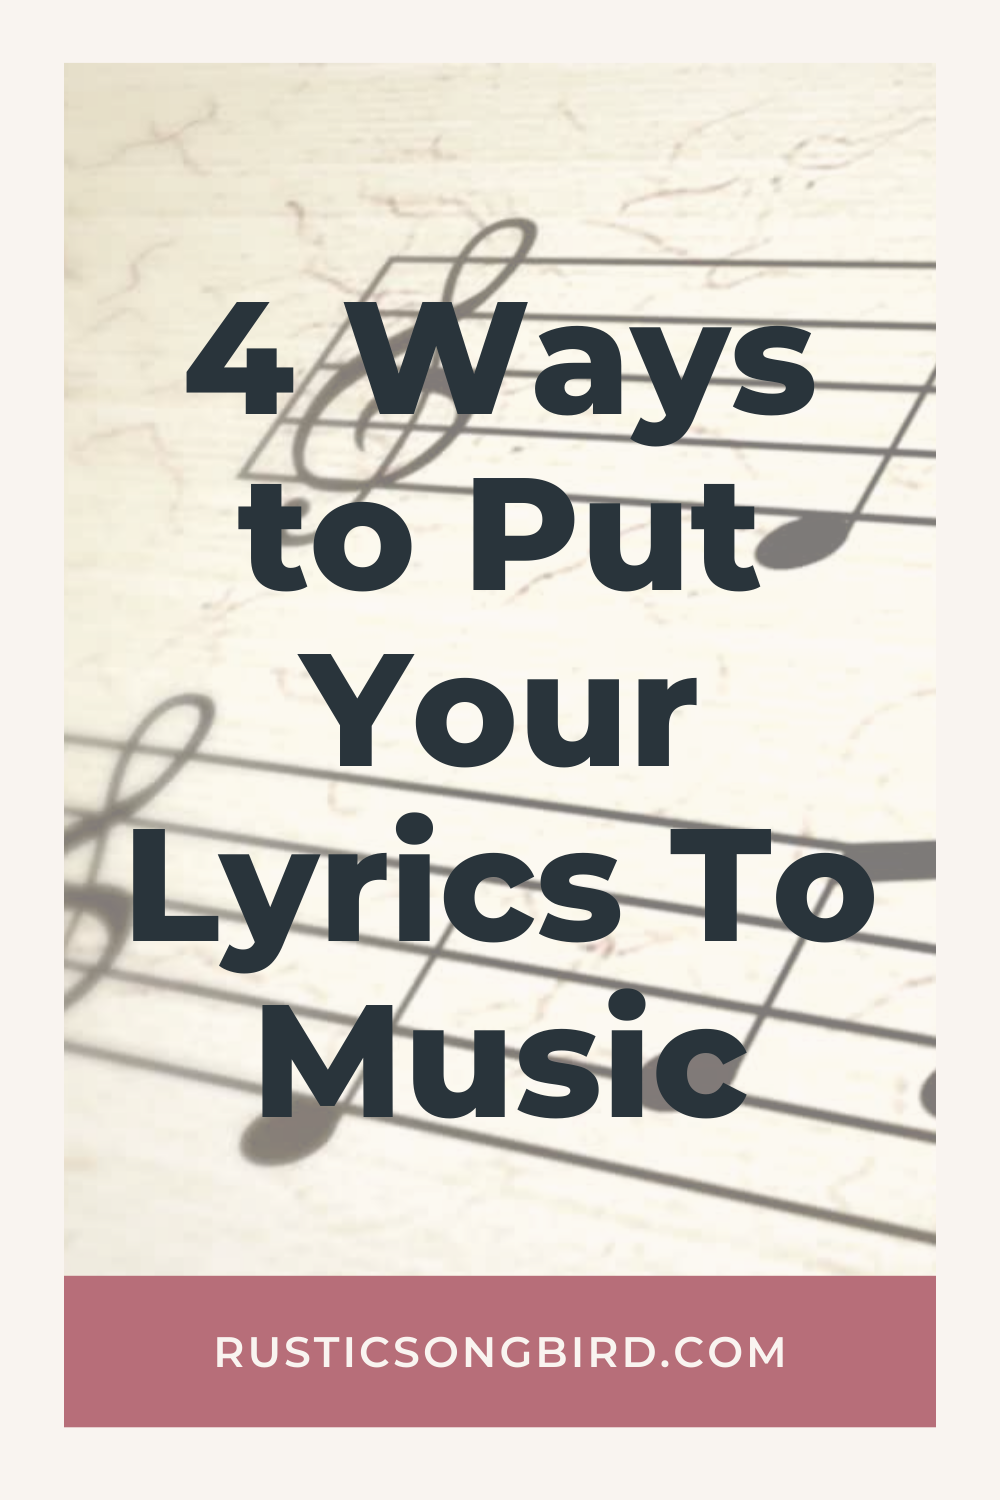 sheet music notes in the background and title text that says